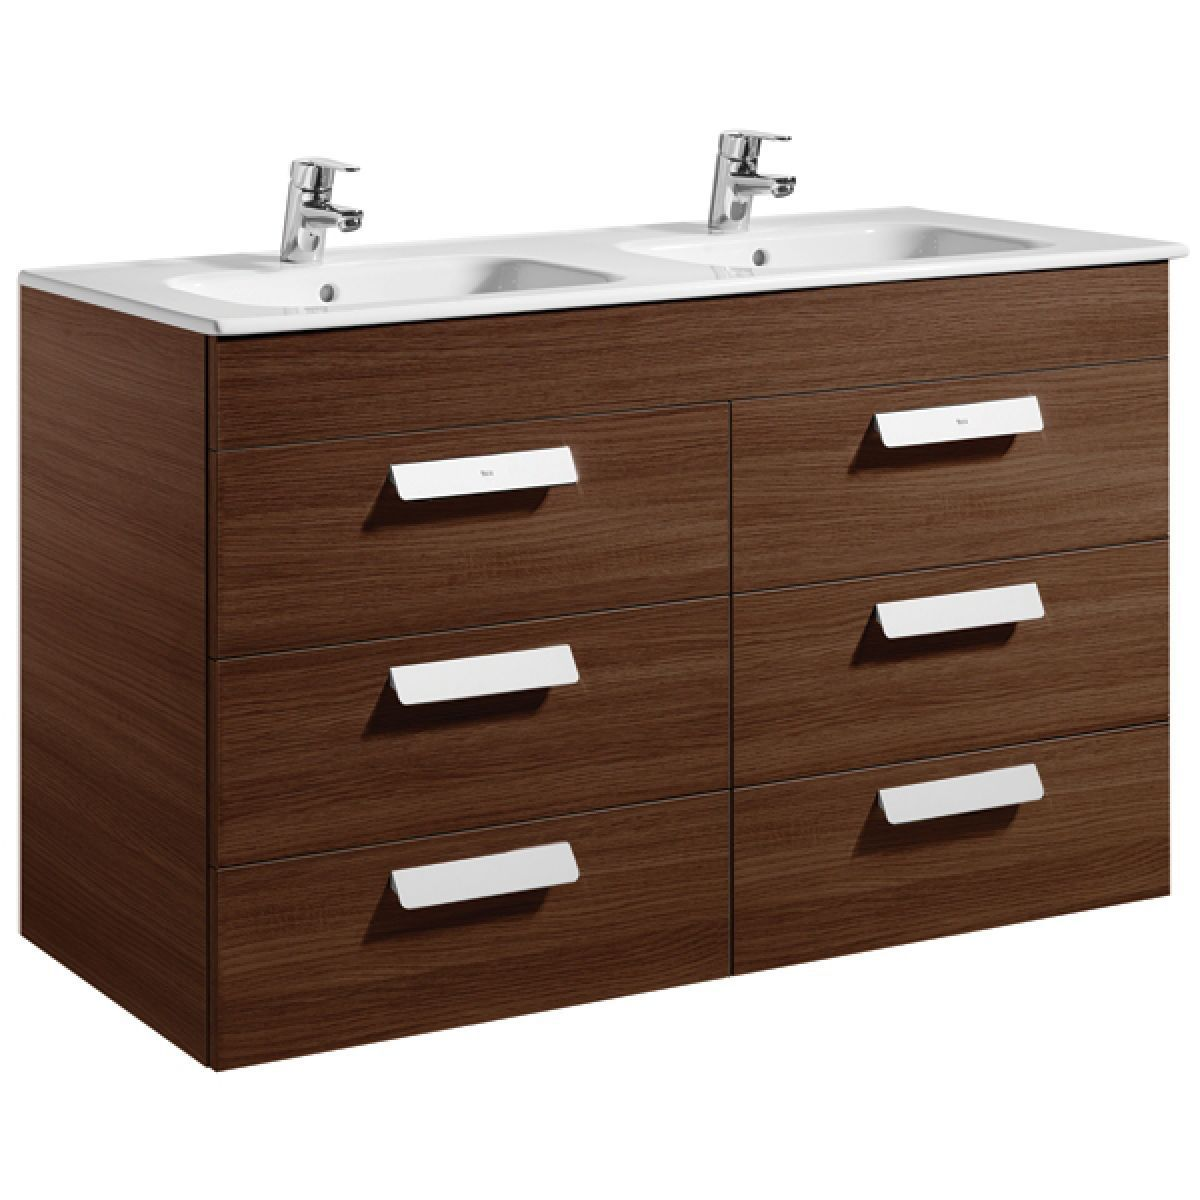 Roca debba double basin vanity unit with drawers uk